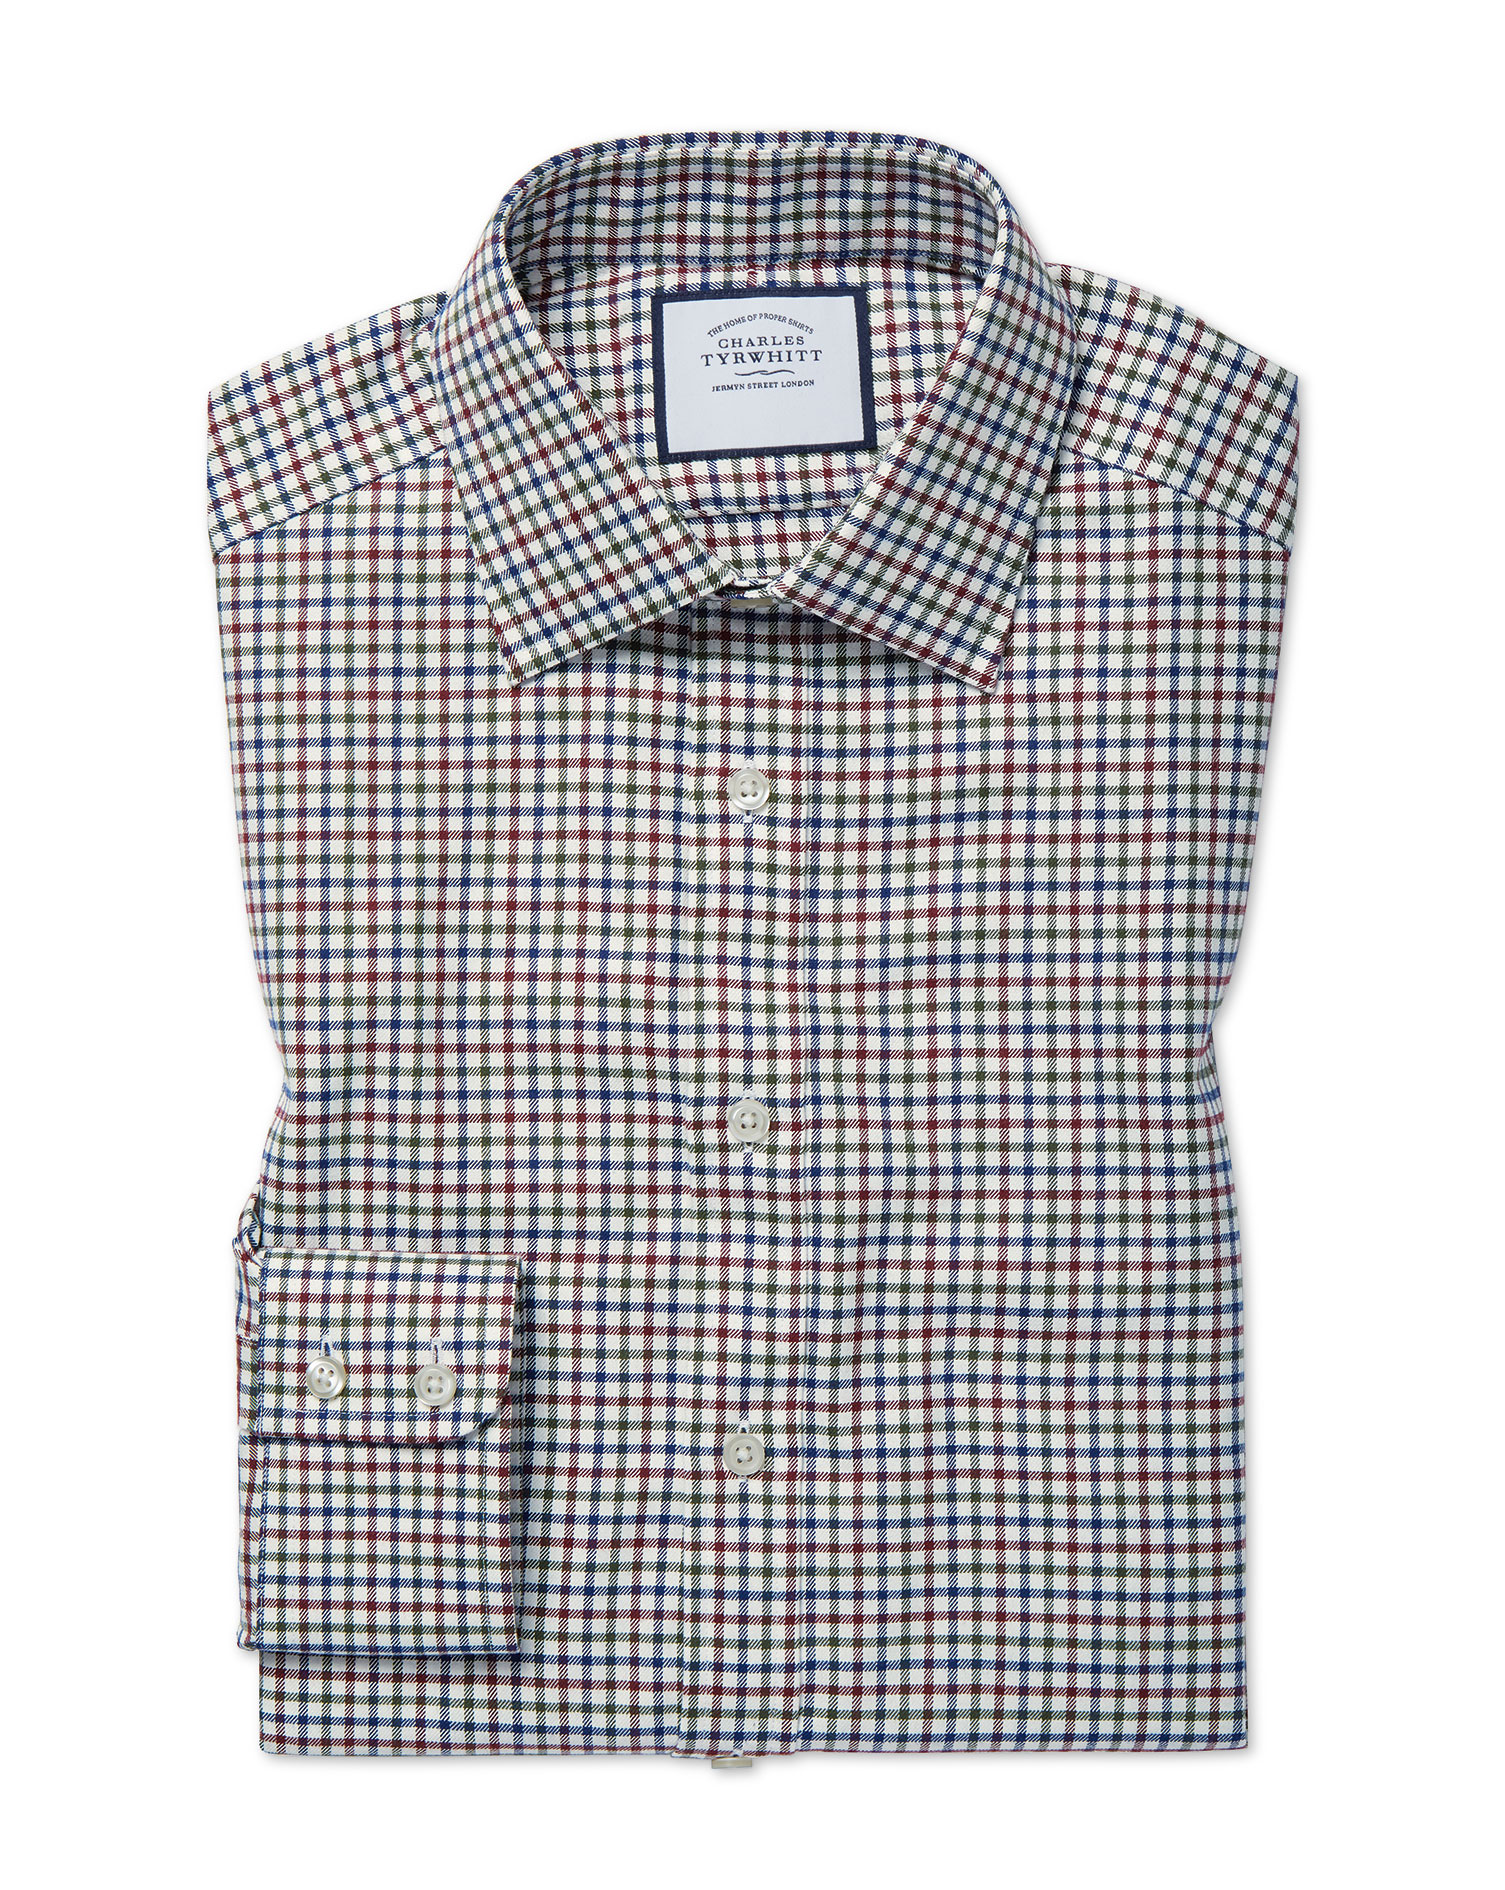 Cotton Classic Fit Country Check Navy And Berry Shirt